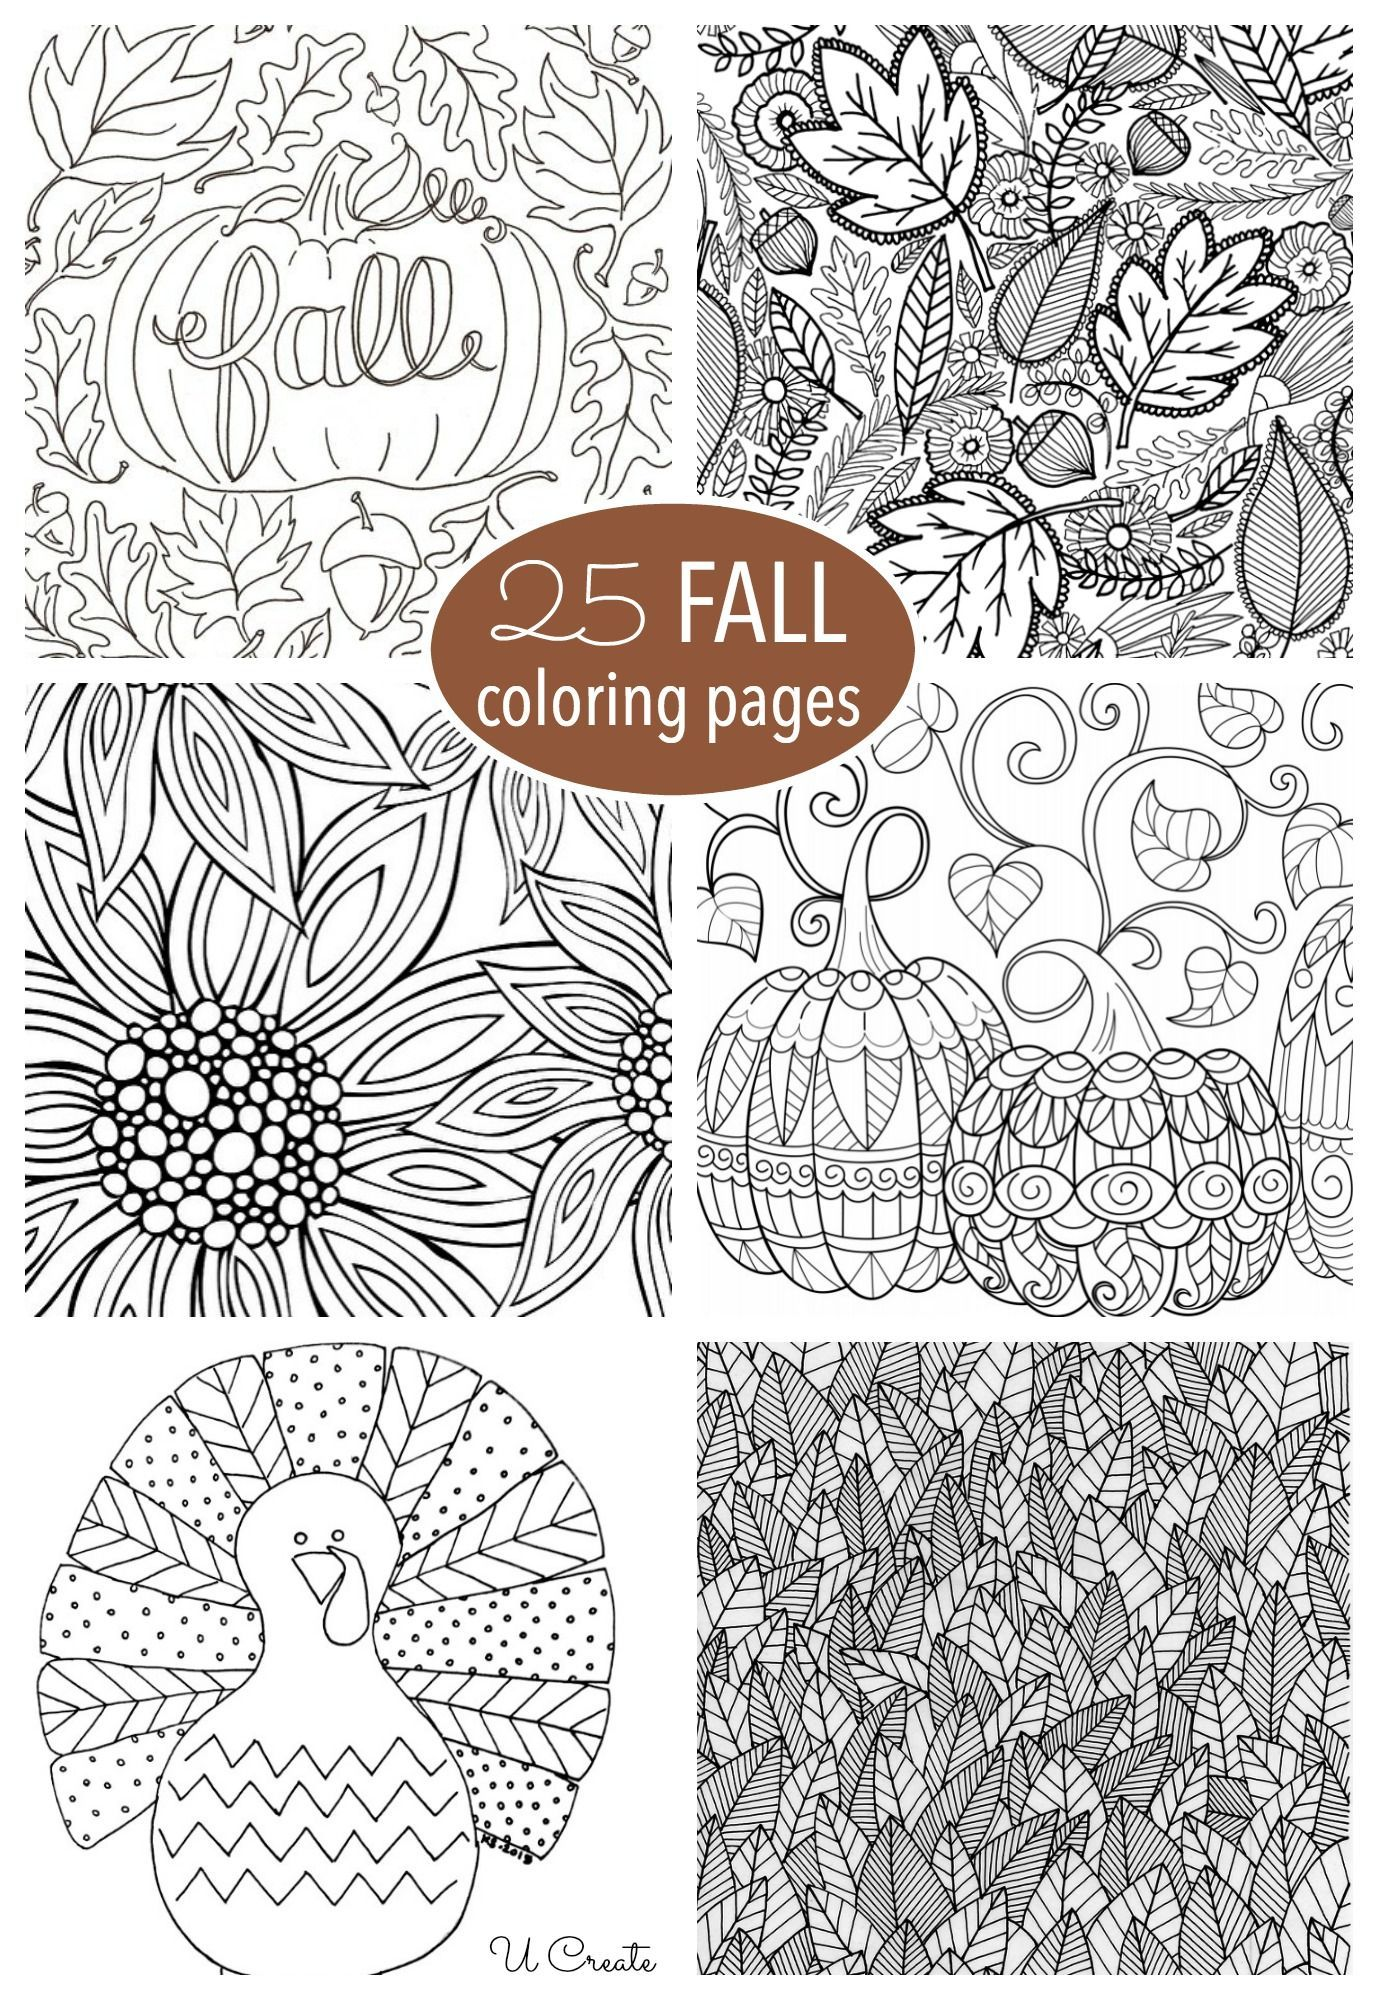 Fantastic Pic Coloring Pages Finished Style The Gorgeous Factor In Relation To Colour Fall Coloring Sheets Thanksgiving Coloring Pages Free Kids Coloring Pages [ 2000 x 1378 Pixel ]